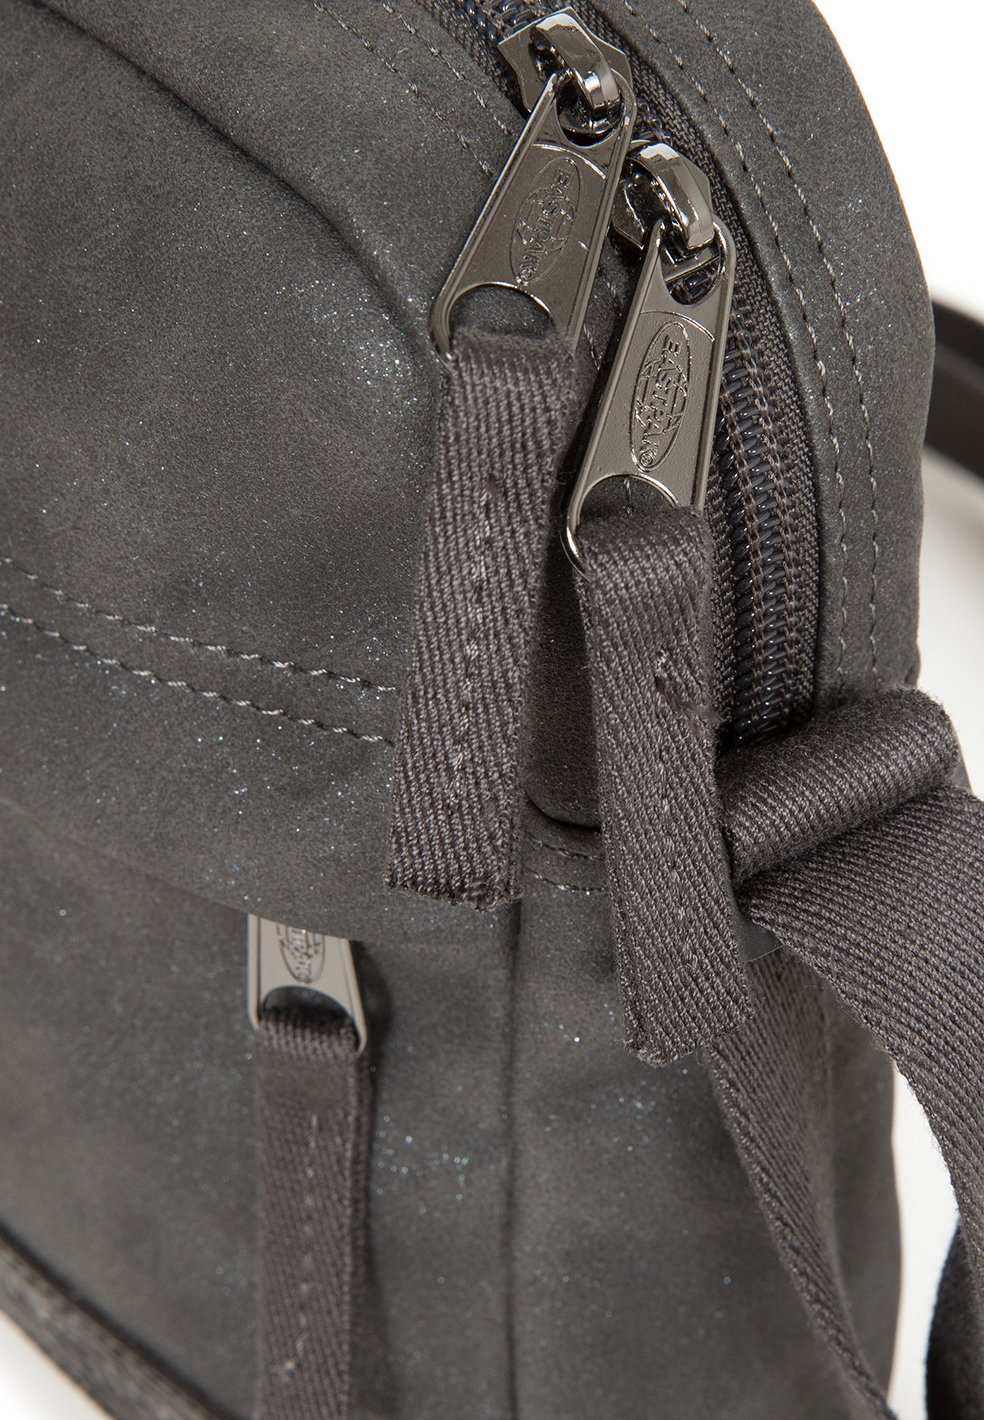 Eastpak Sac Bandoulière - Black/dark Grey